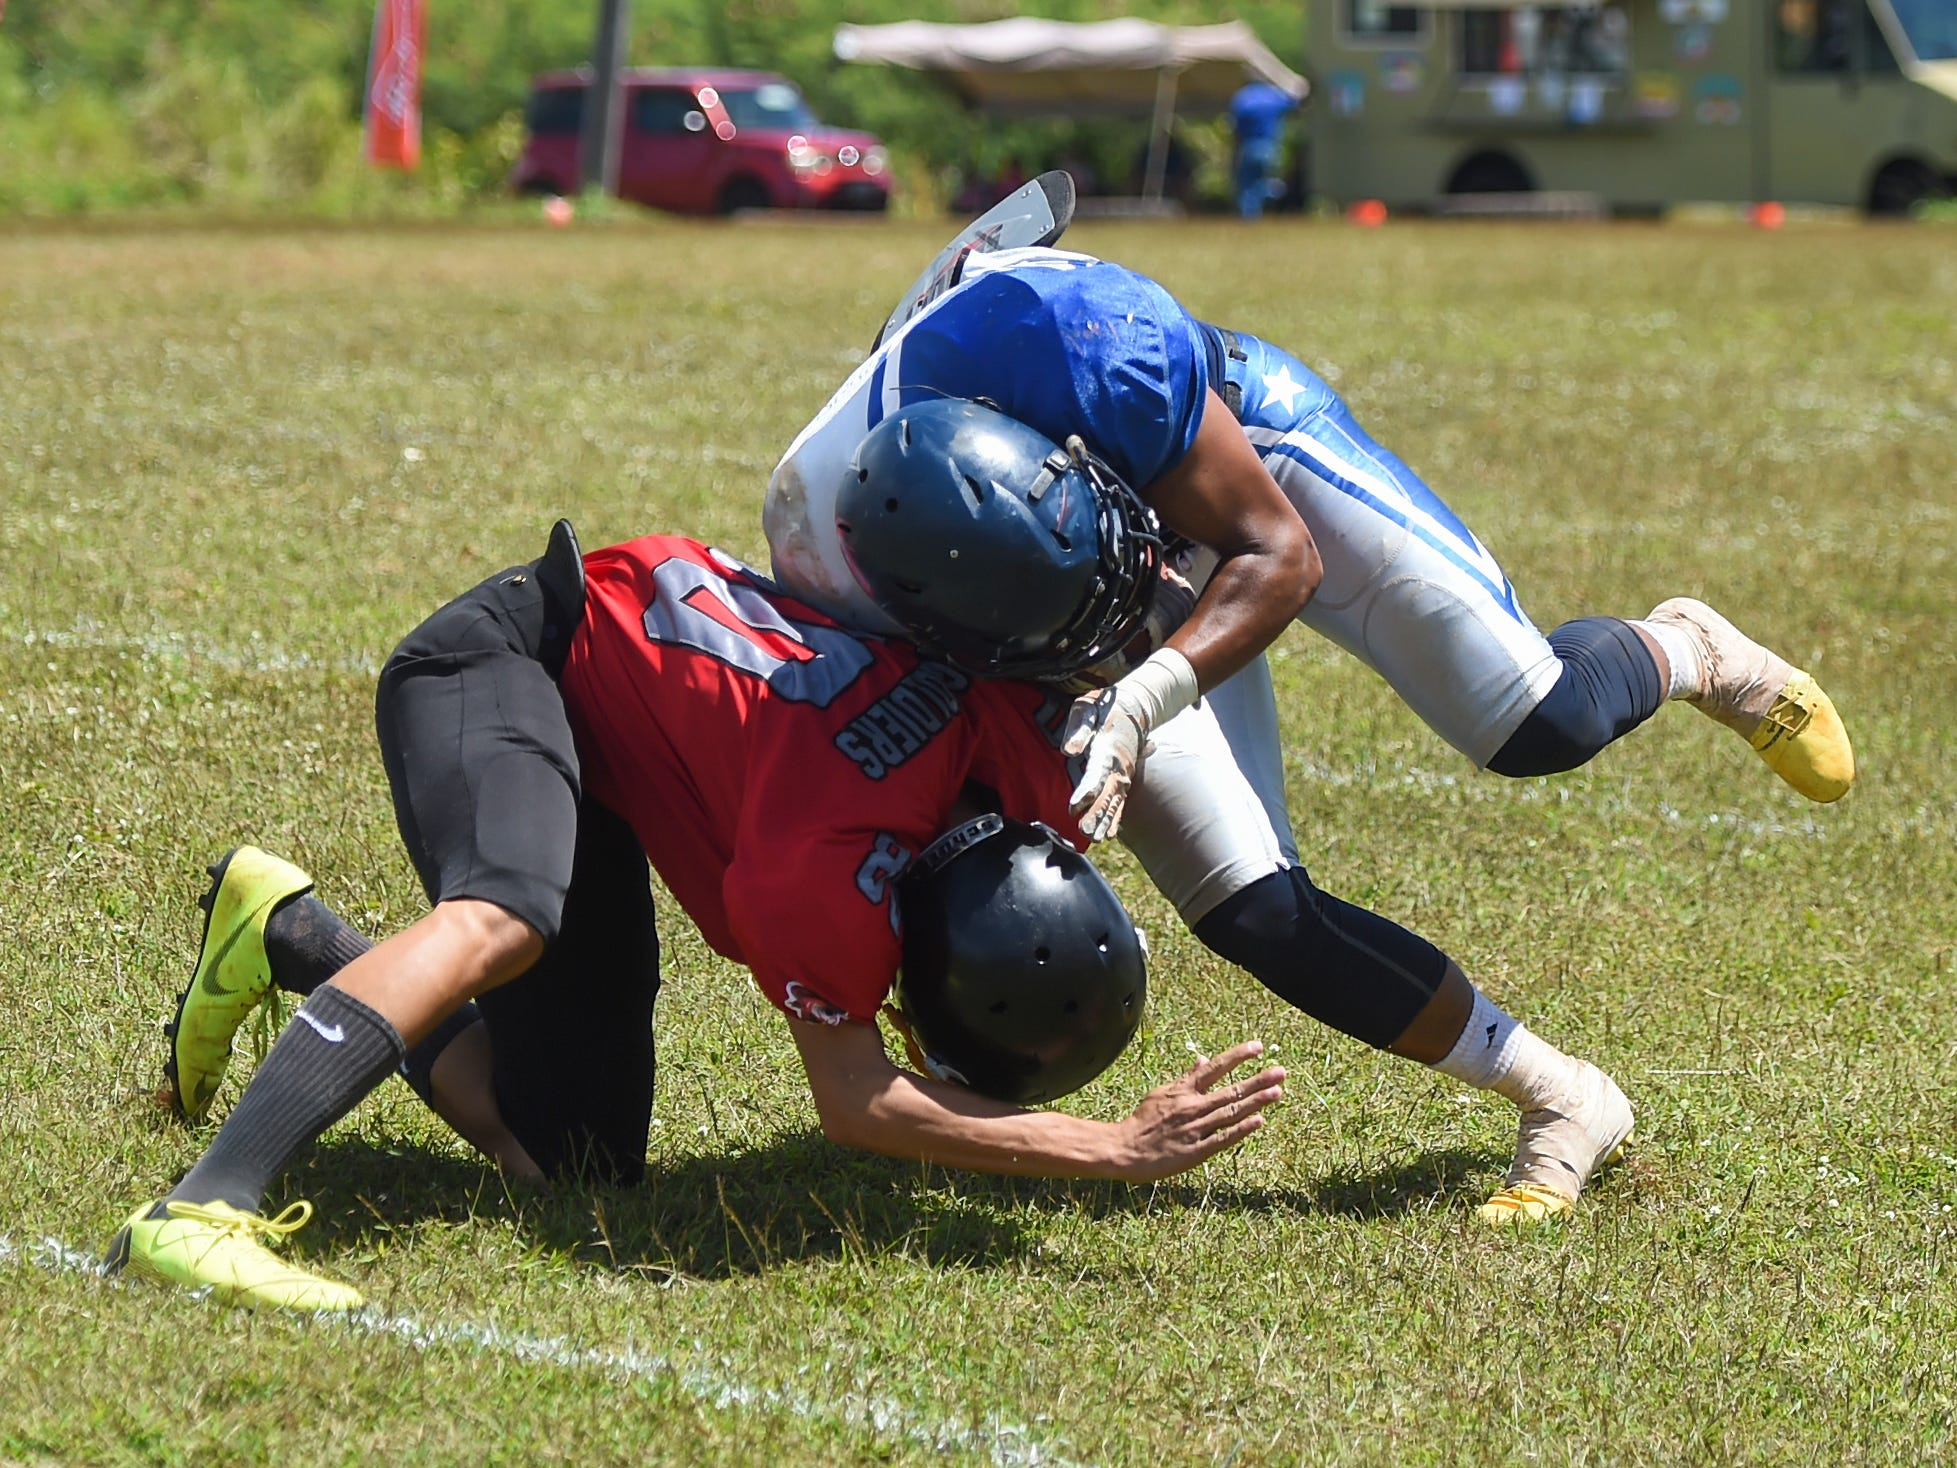 The Southern Cowboys' Connie Toney (1) clashes with an Outlaws player during a Budweiser Guahan Varsity Football League game at Eagles Field in Mangilao, March 9, 2019.